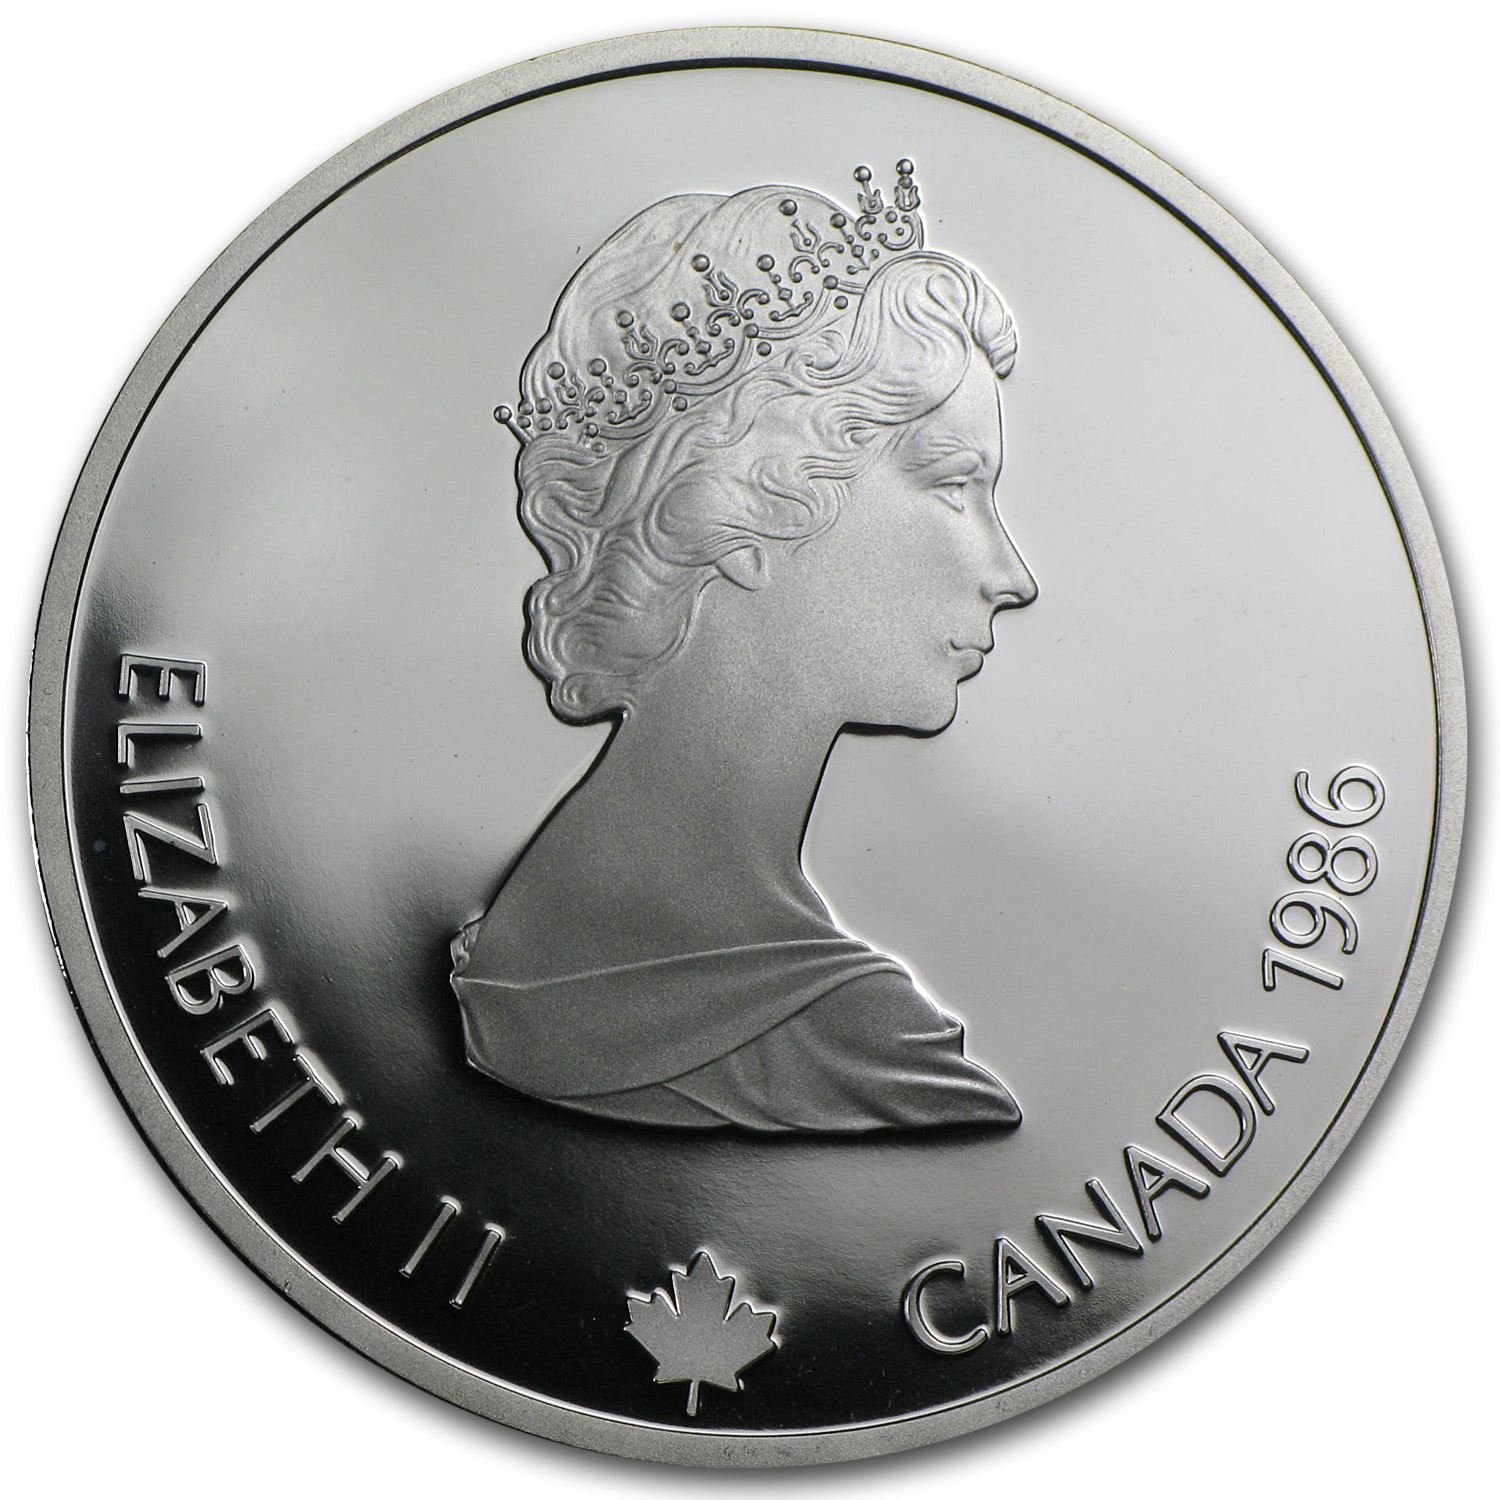 1988 1 oz Silver $20 Canadian Olympic Proof Coins